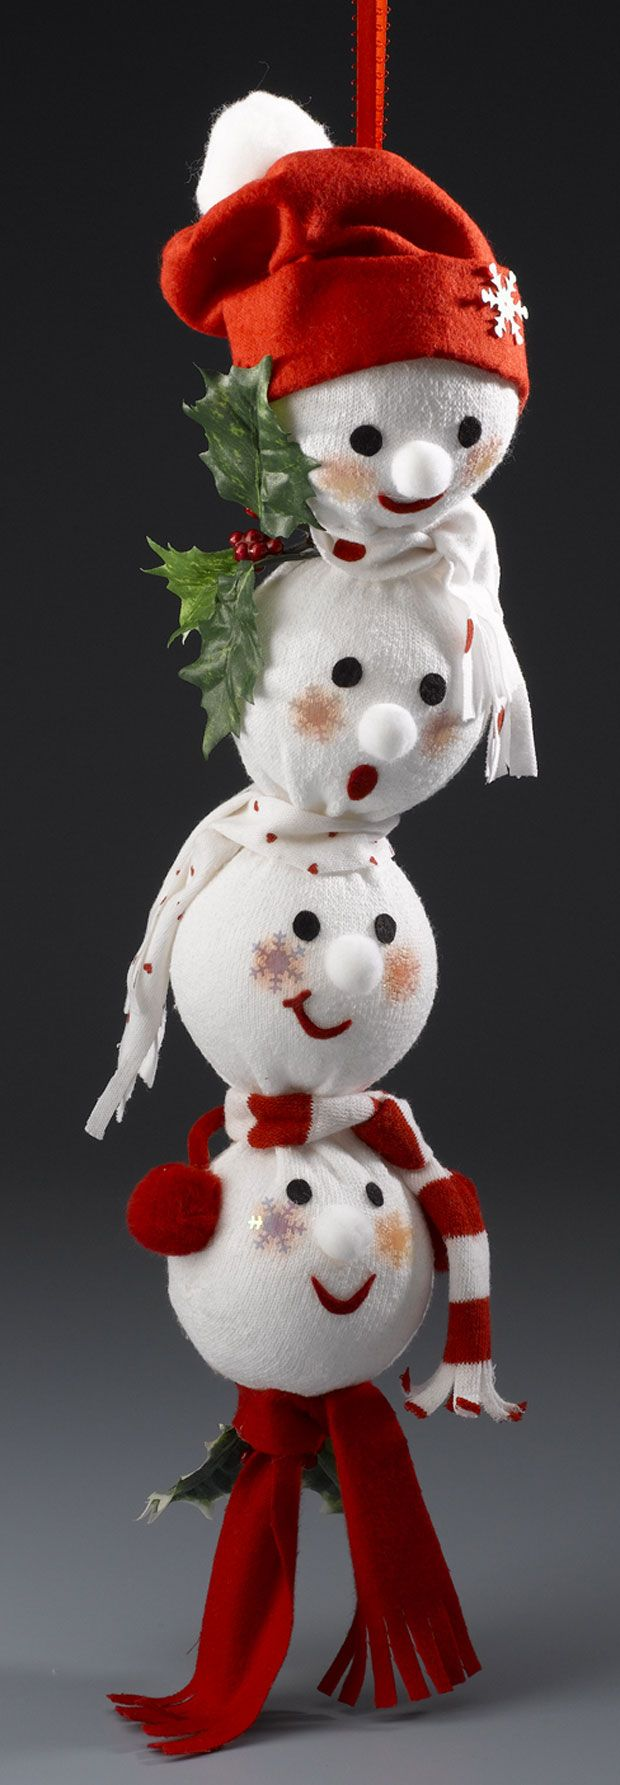 Repurpose socks, stockings & sweaters to make these snowmancrafts